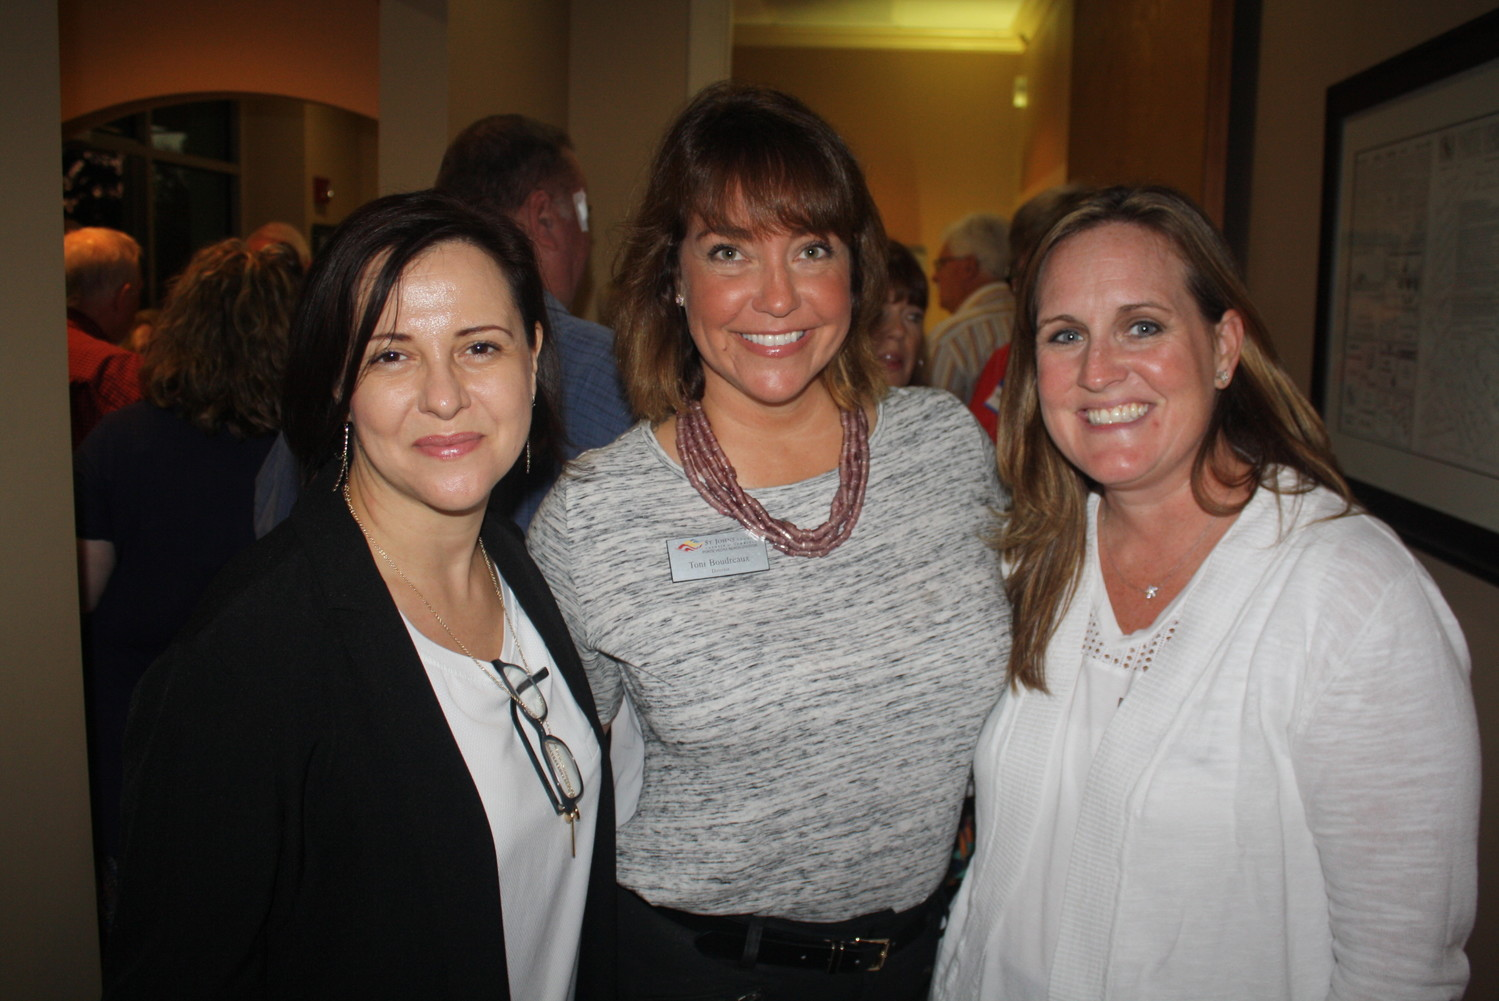 SJC Chamber President and CEO Isabelle Rodriguez, PVB Division Director Toni Boudreaux and Chamber Sales and Marketing Manager Erin Cook